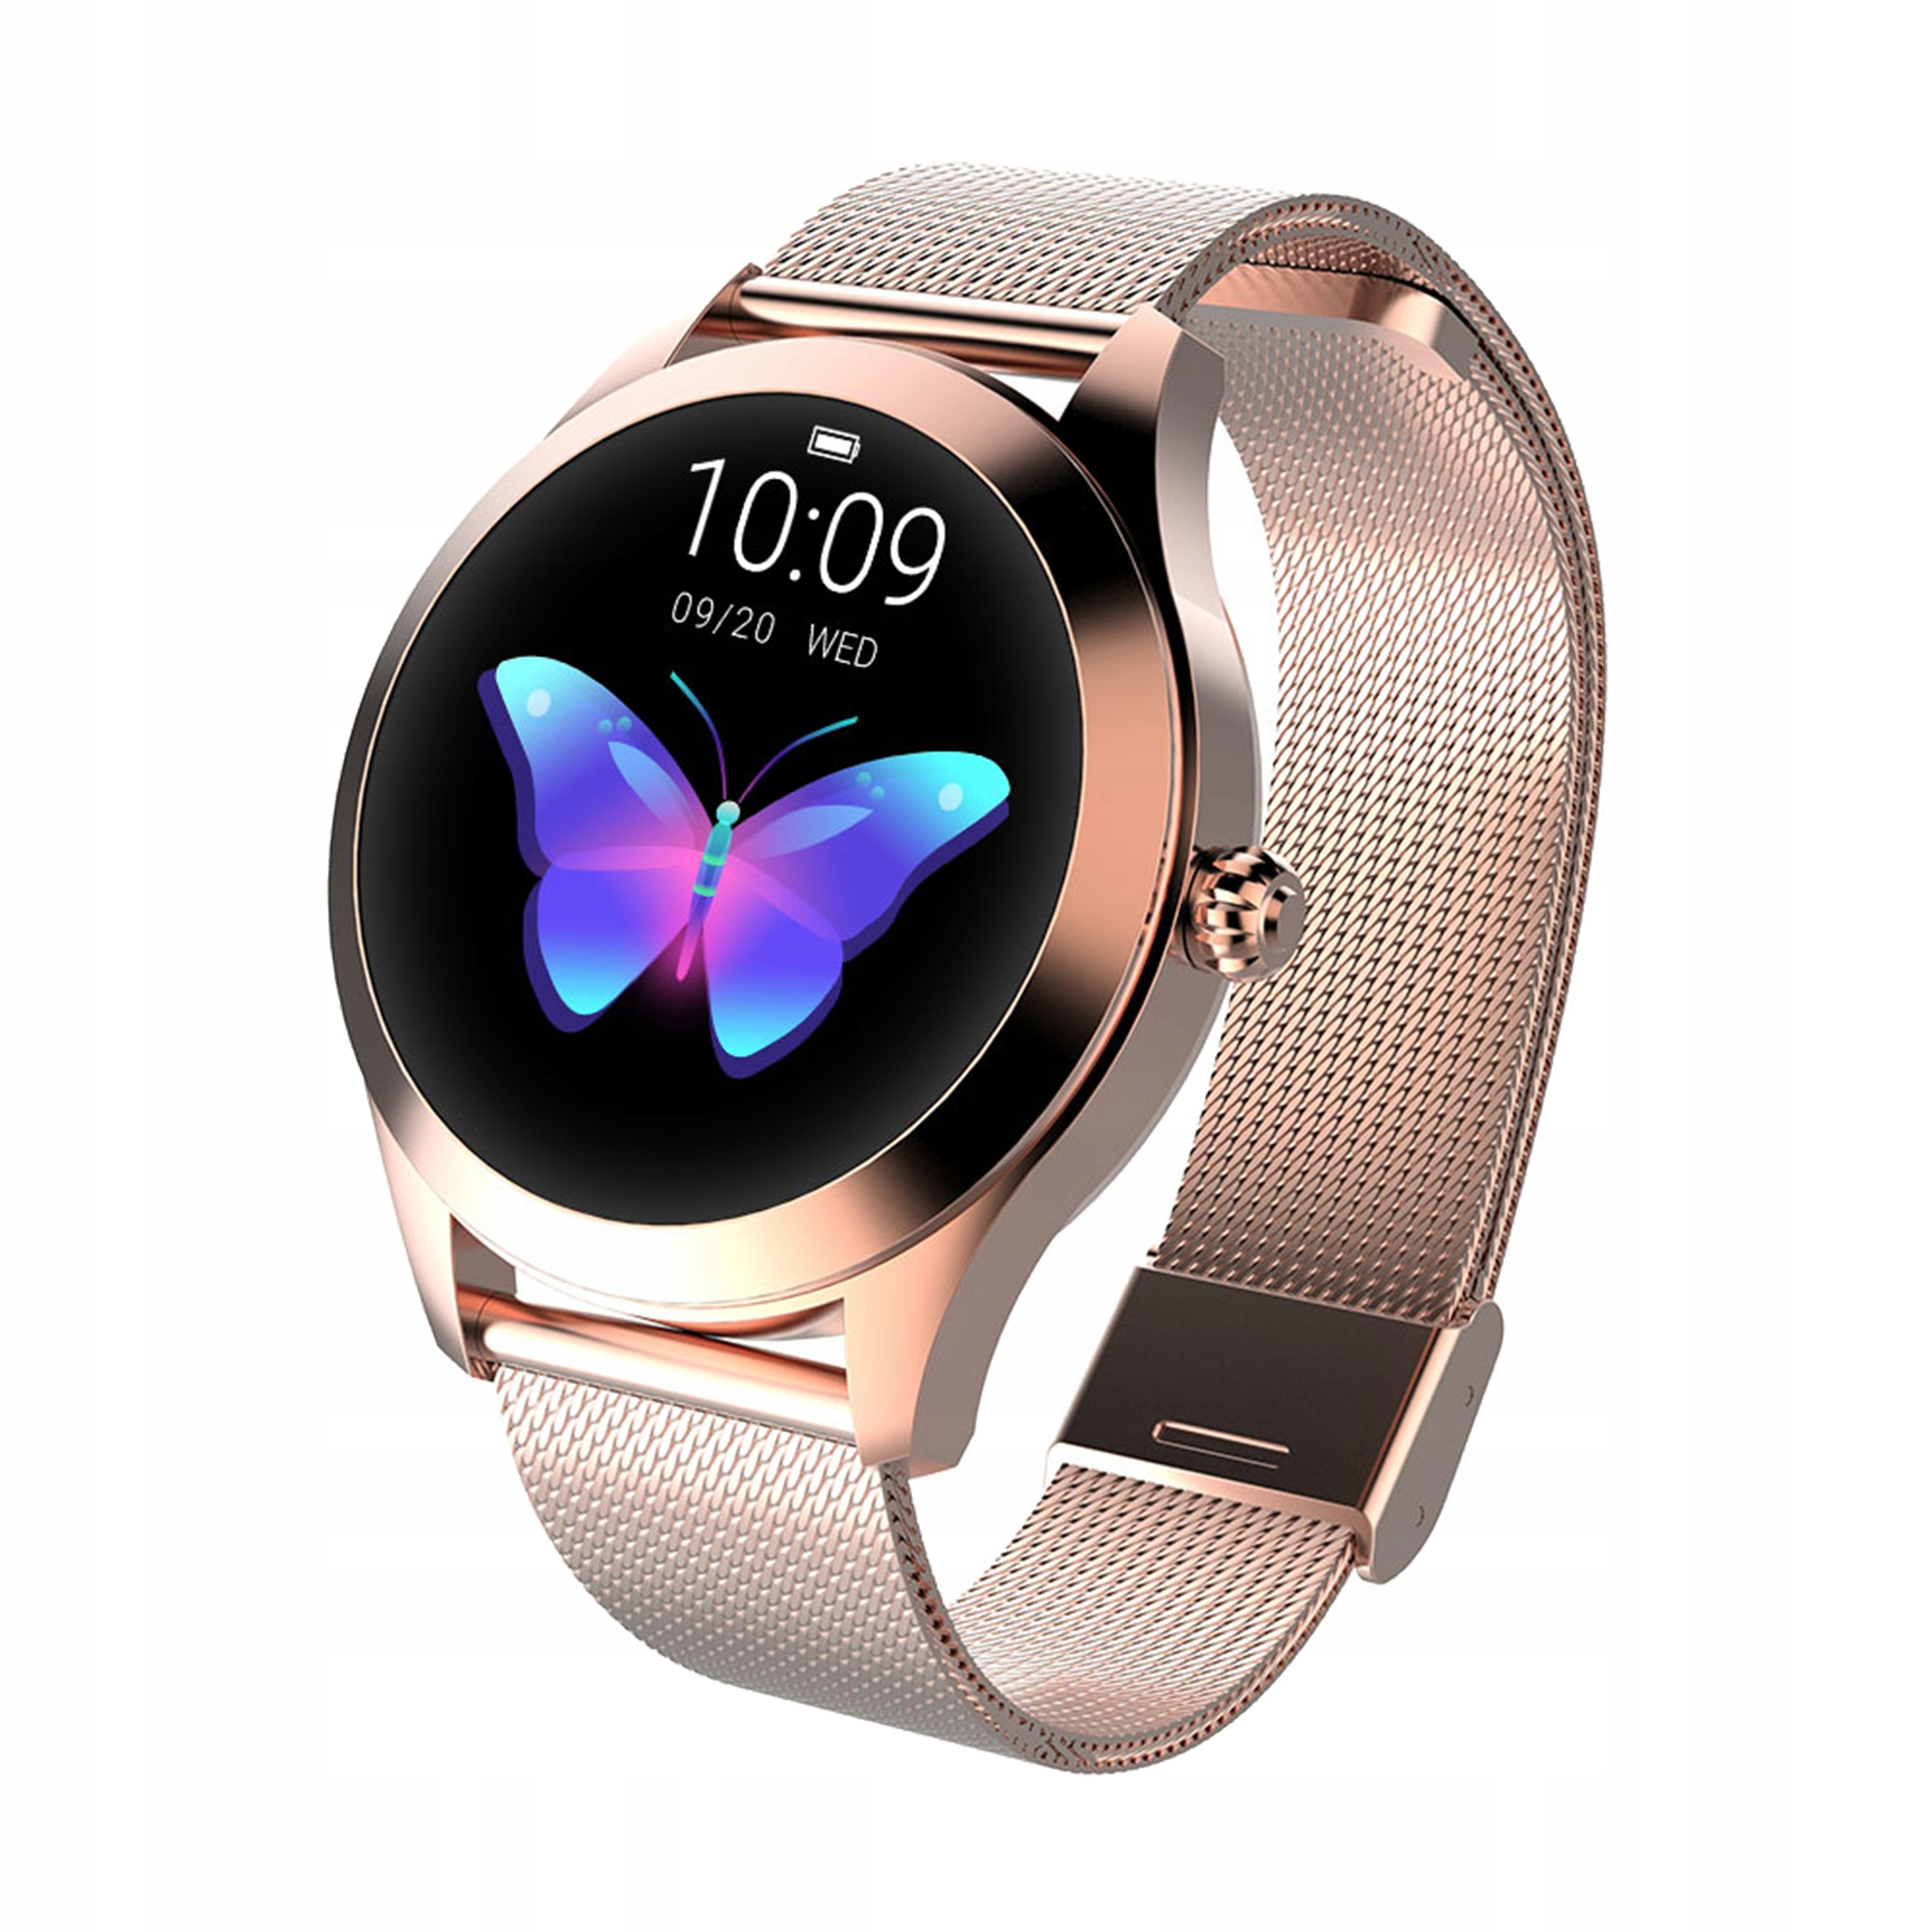 Item Women's Smartwatch OLED KW10 DESIGN steps, the pulse cycle